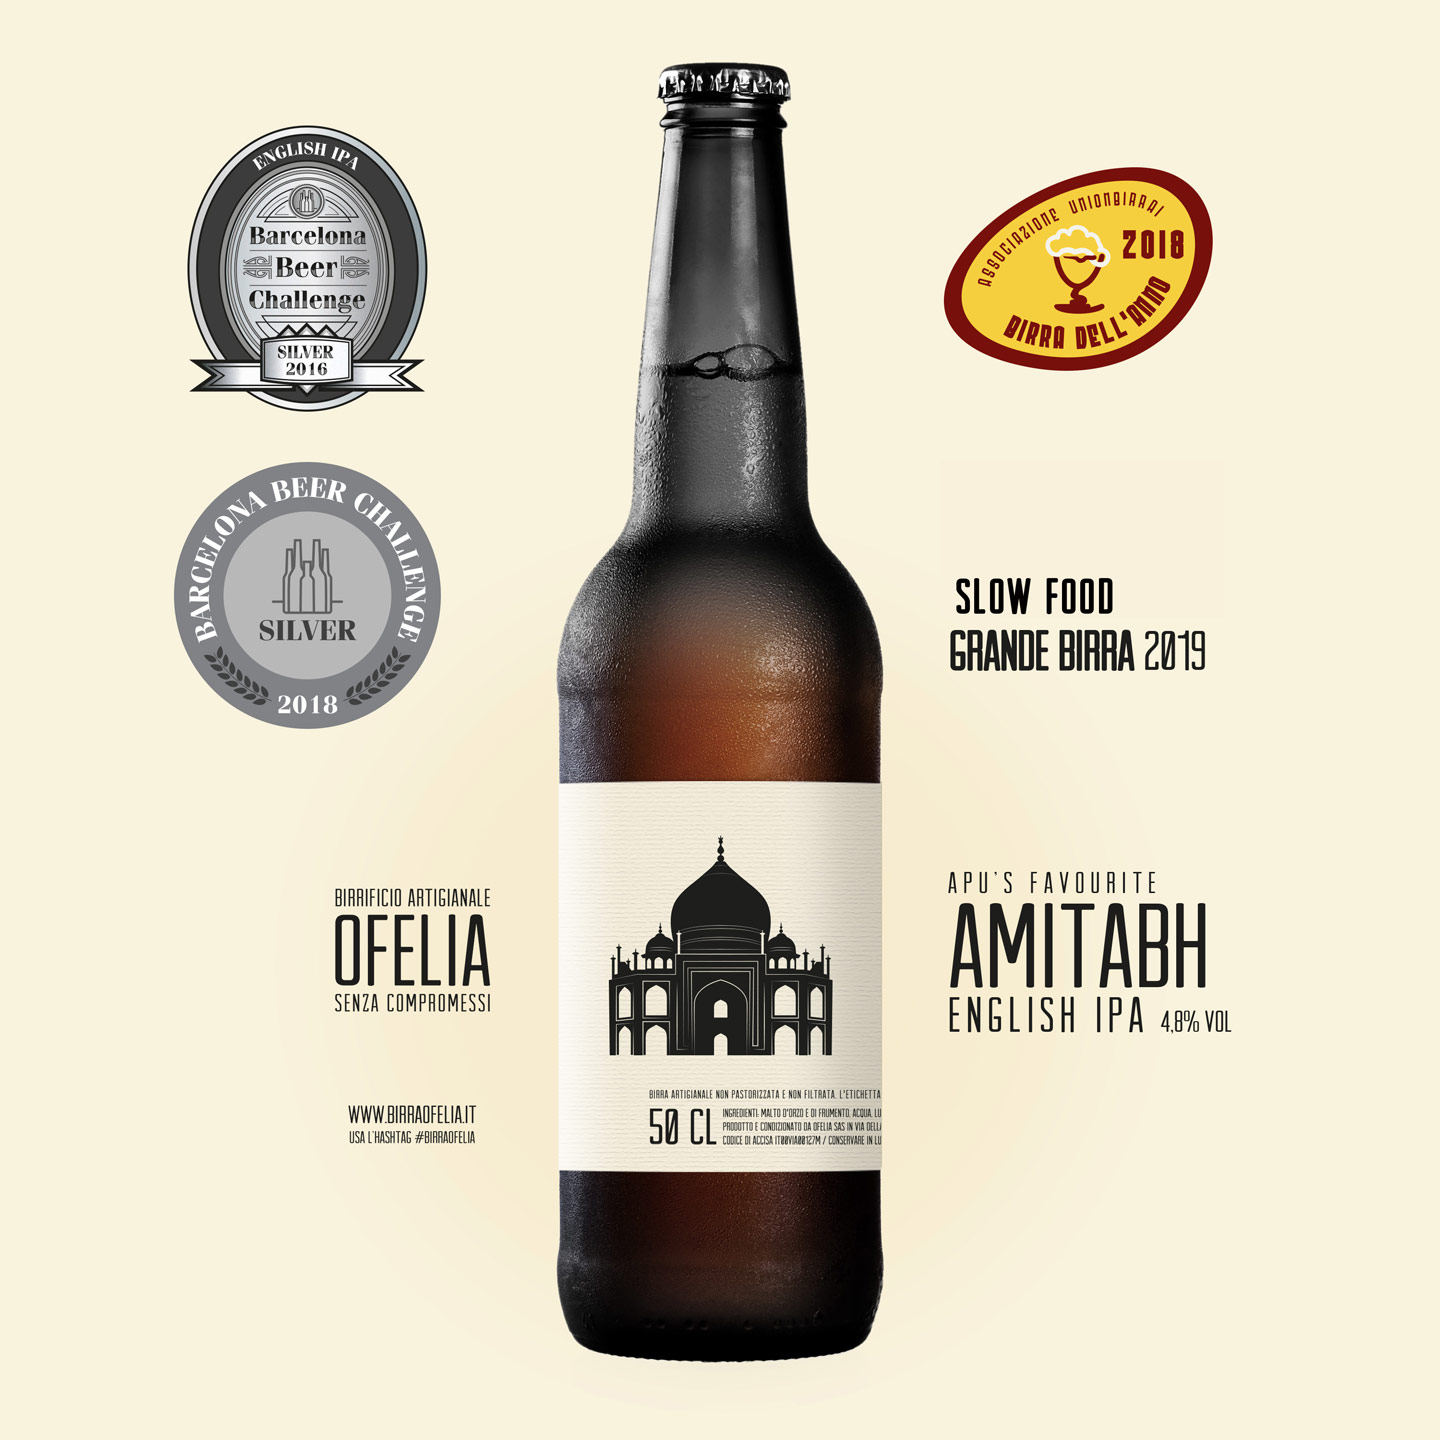 amitabh indian pale ale